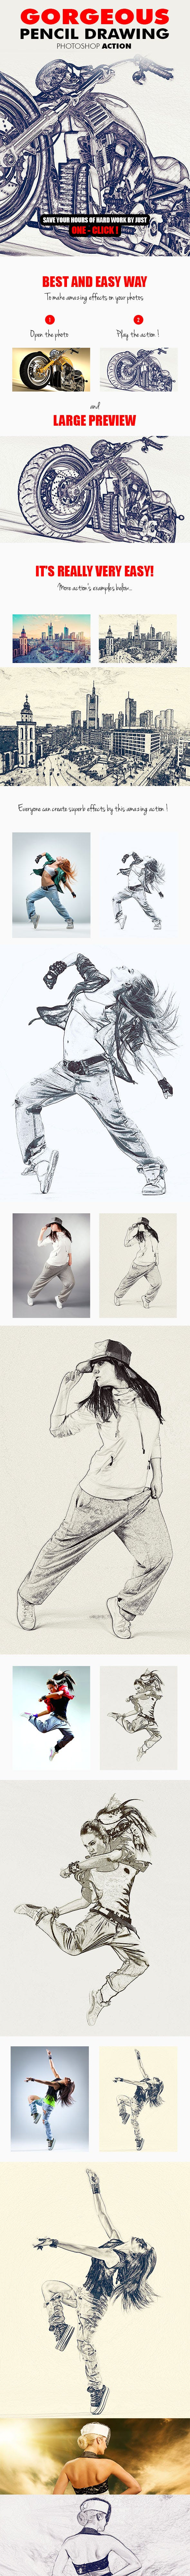 Gorgeous pencil drawing v 1 photoshop action photo effects actions